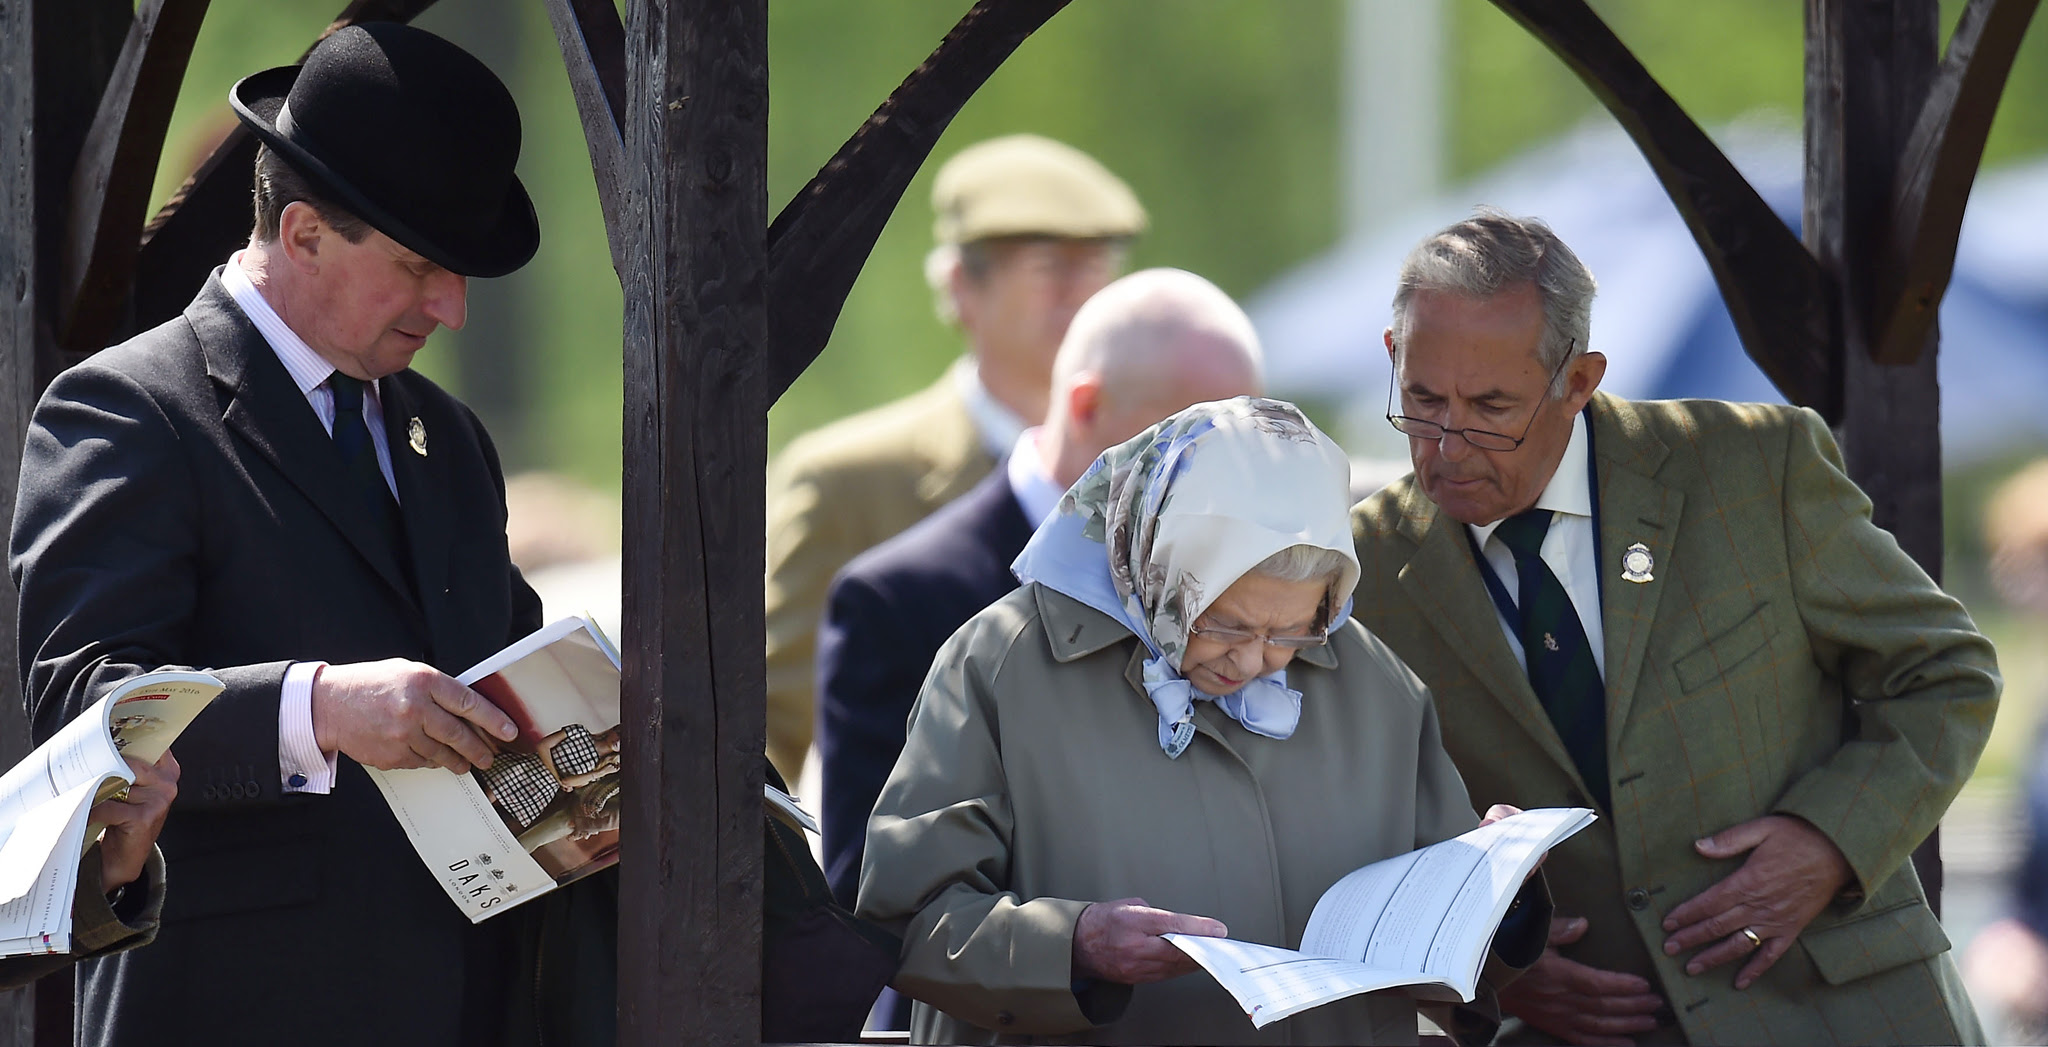 Queen Elizabeth II studies the programme as she attends the third day of the Royal Windsor Horse Show, which is held in the grounds of Windsor Castle in Berkshire. PRESS ASSOCIATION Photo. Picture date: Thursday May 12, 2016. Photo credit should read: Andrew Matthews/PA Wire